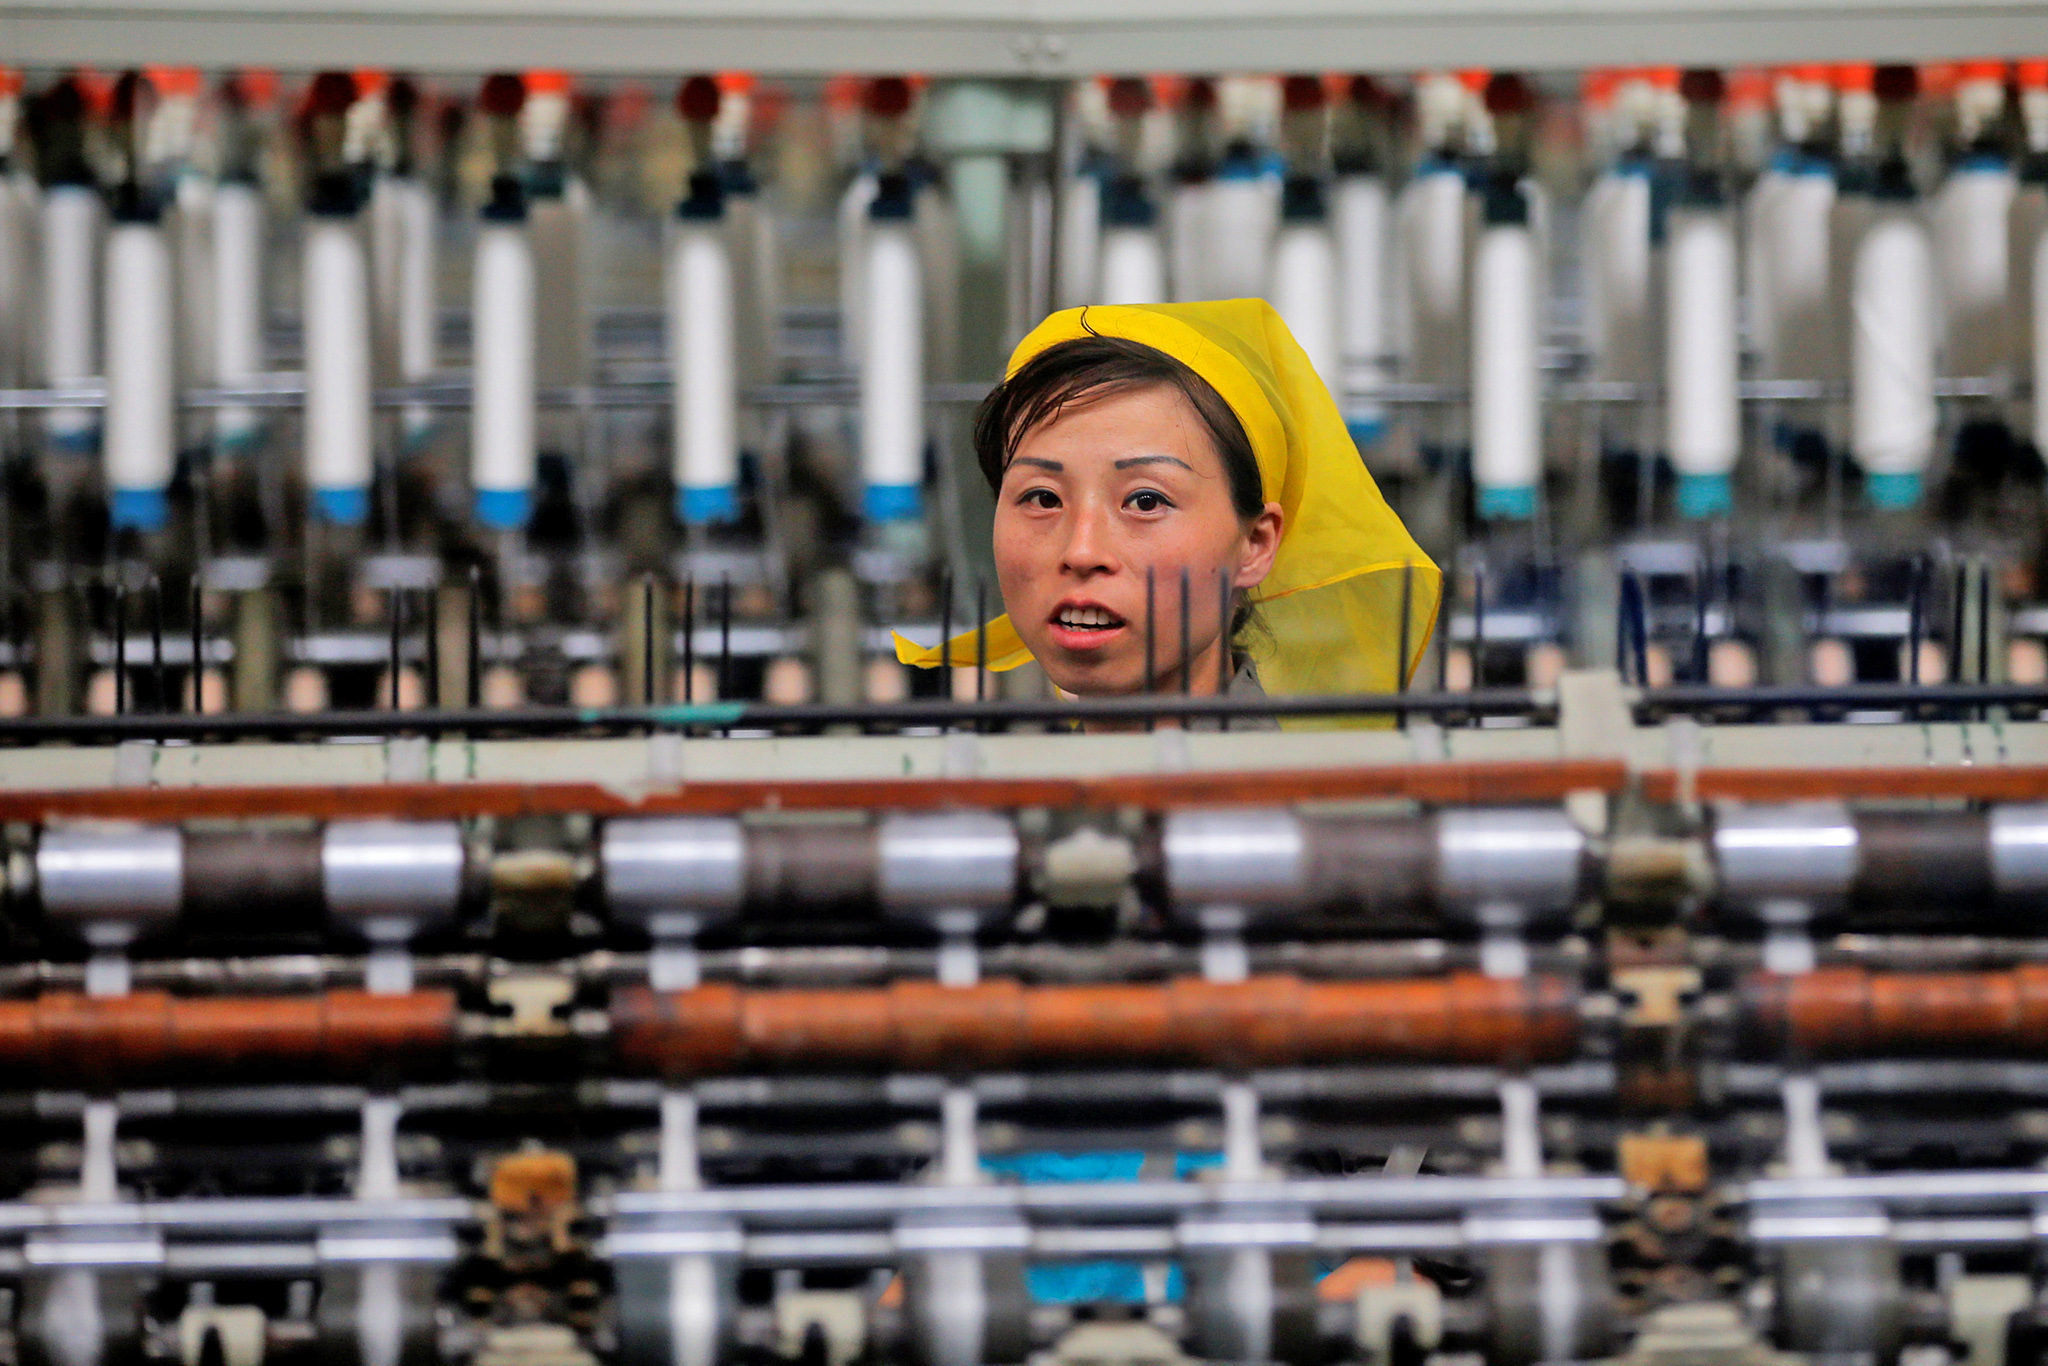 A woman works at the Kim Jong Suk Pyongyang textile mill during a government organised visit for foreign reporters in Pyongyang, North Korea May 9, 2016.